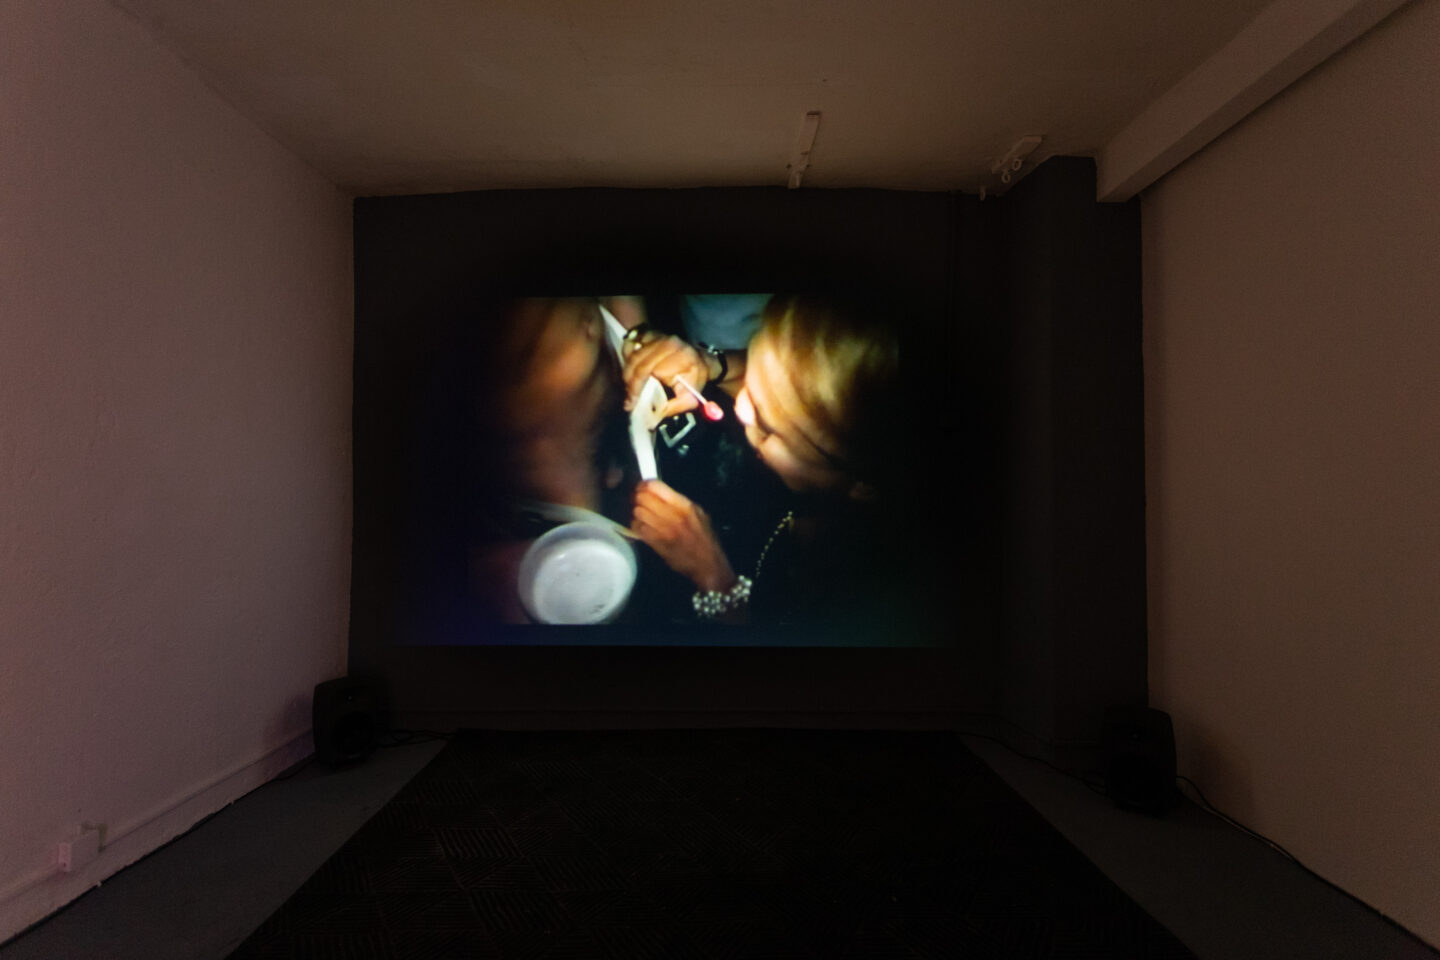 Exhibition View Groupshow «Can You Feel It?; view on Vaginal Davis, Cholita!, 1995, directed by Michelle Mills; Vaginal Davis, The Last Club Sucker, 1999, directed by Vaginal Davis» at Last Tango, Zurich, 2019 / Photo: Kilian Bannwart / Courtesy: the artist, Last Tango and Dan Gunn Gallery